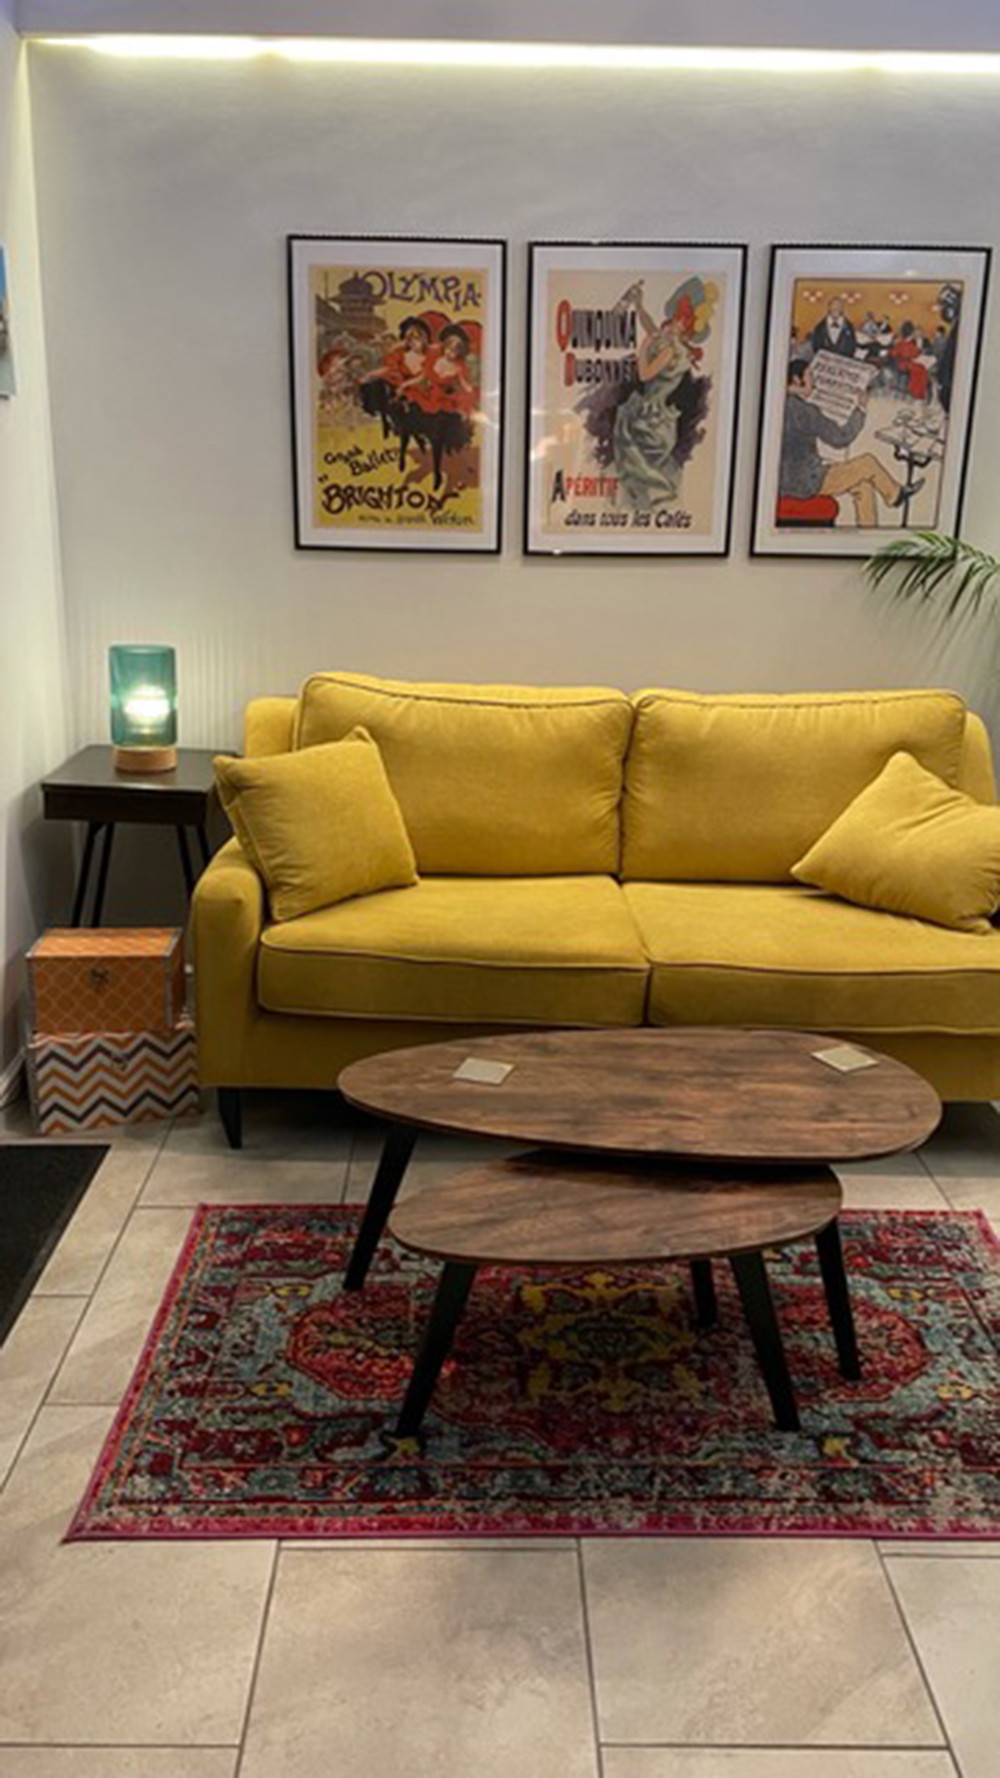 Yellow upholstered three-person sofa Orson